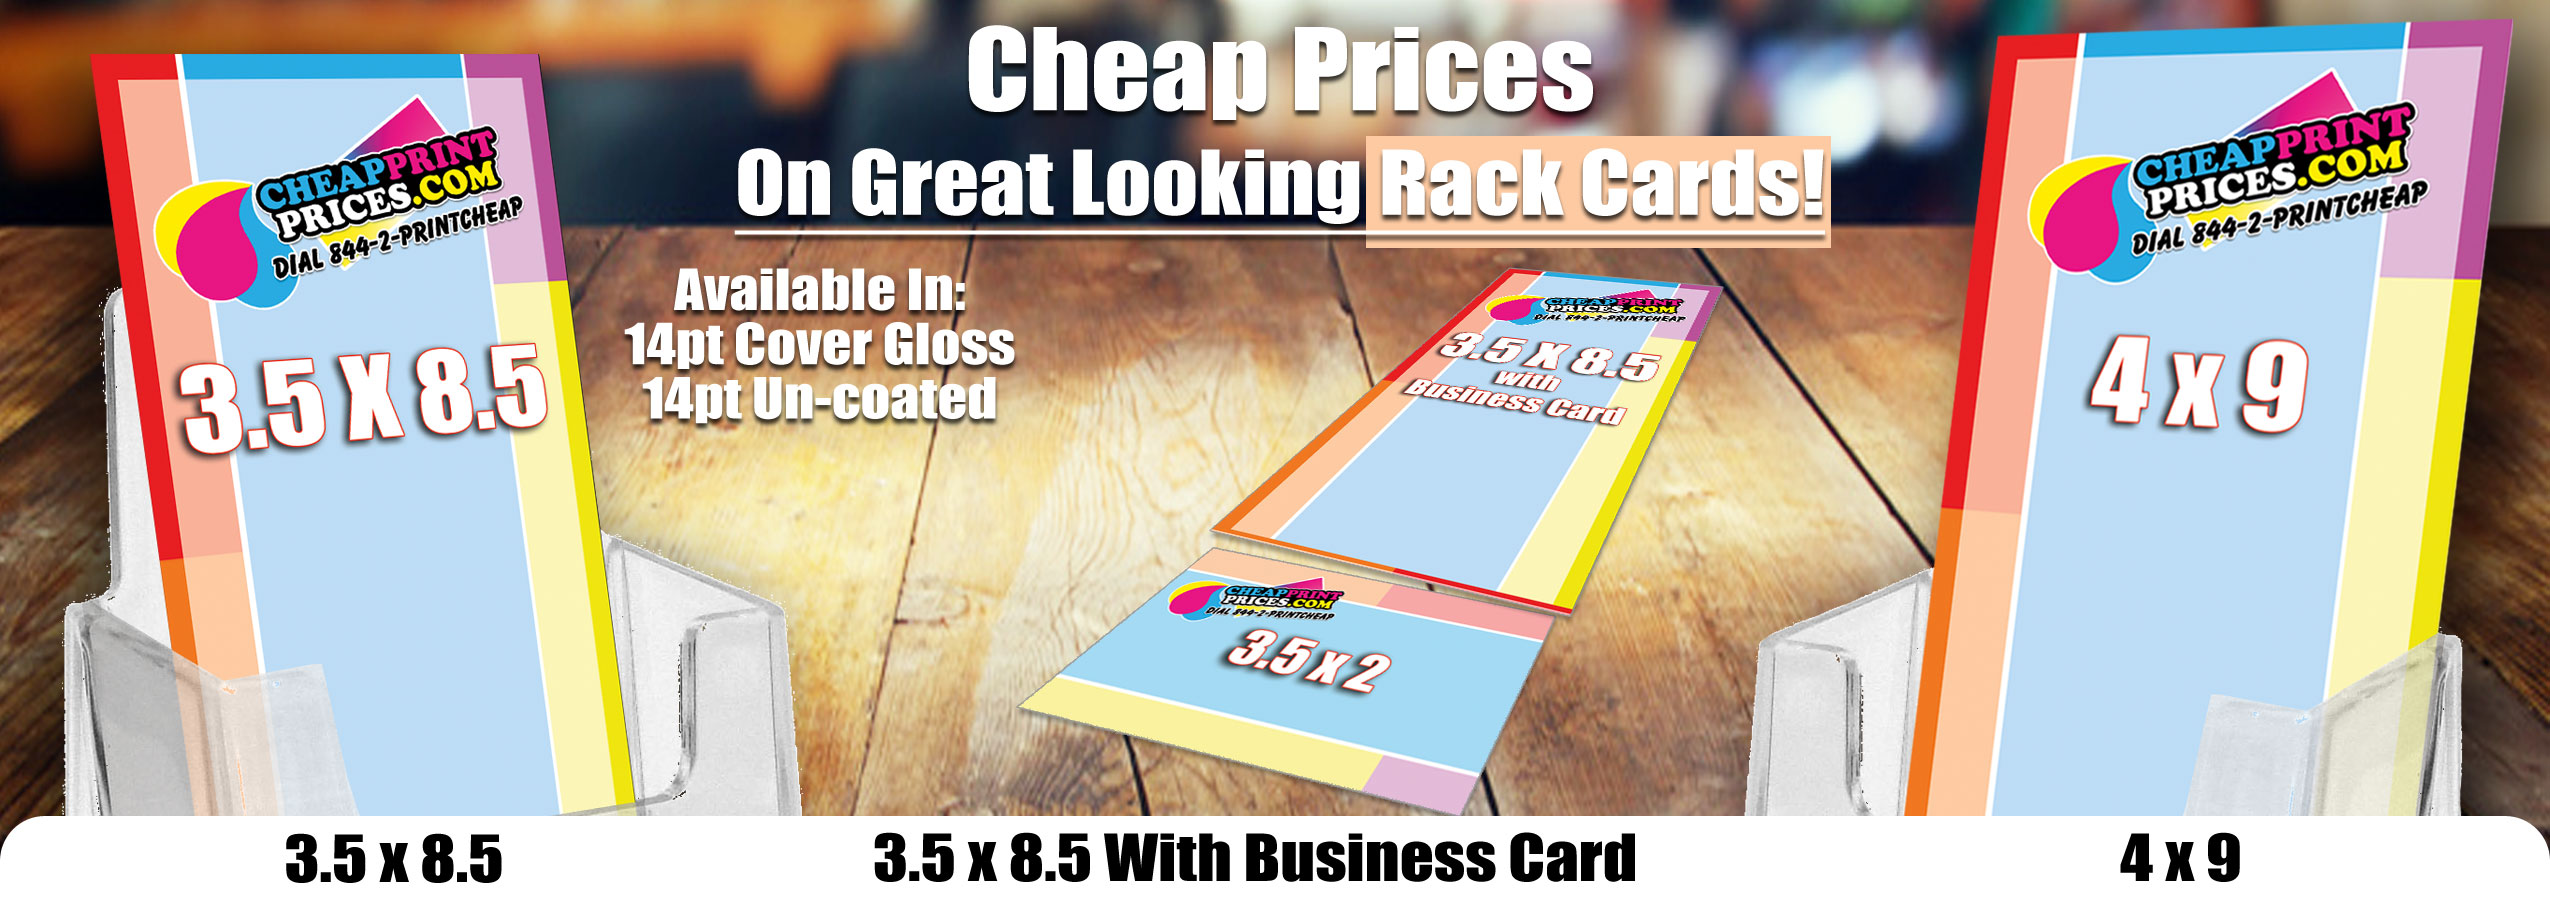 rack card printing 5000 rackcards $189 free shipping